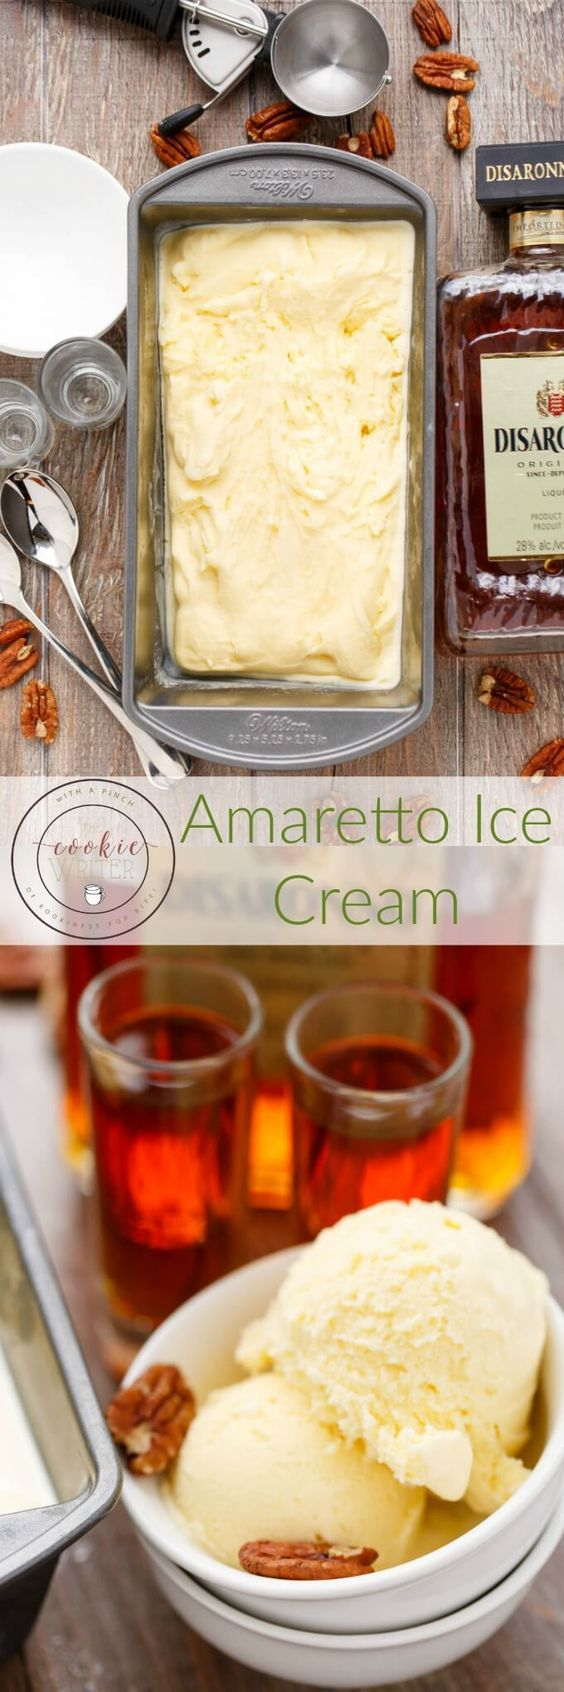 Rich, and yet not too sweet, this Amaretto ice cream is the perfect balance of flavours for the New Year! Who says you cannot eat ice cream…